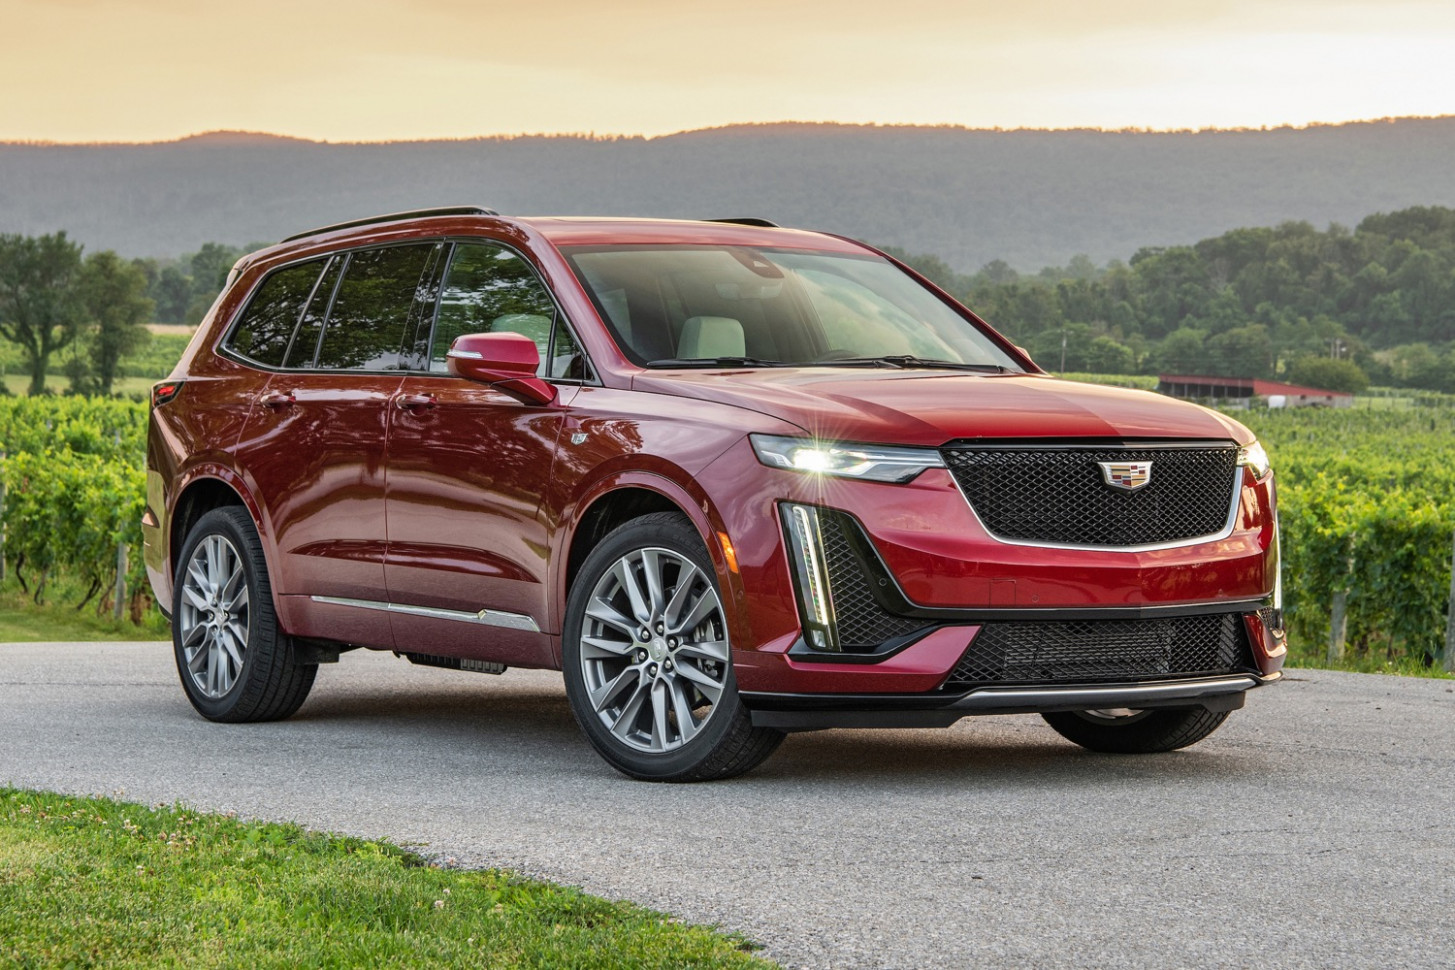 Specs When Will The 2022 Cadillac Xt5 Be Available